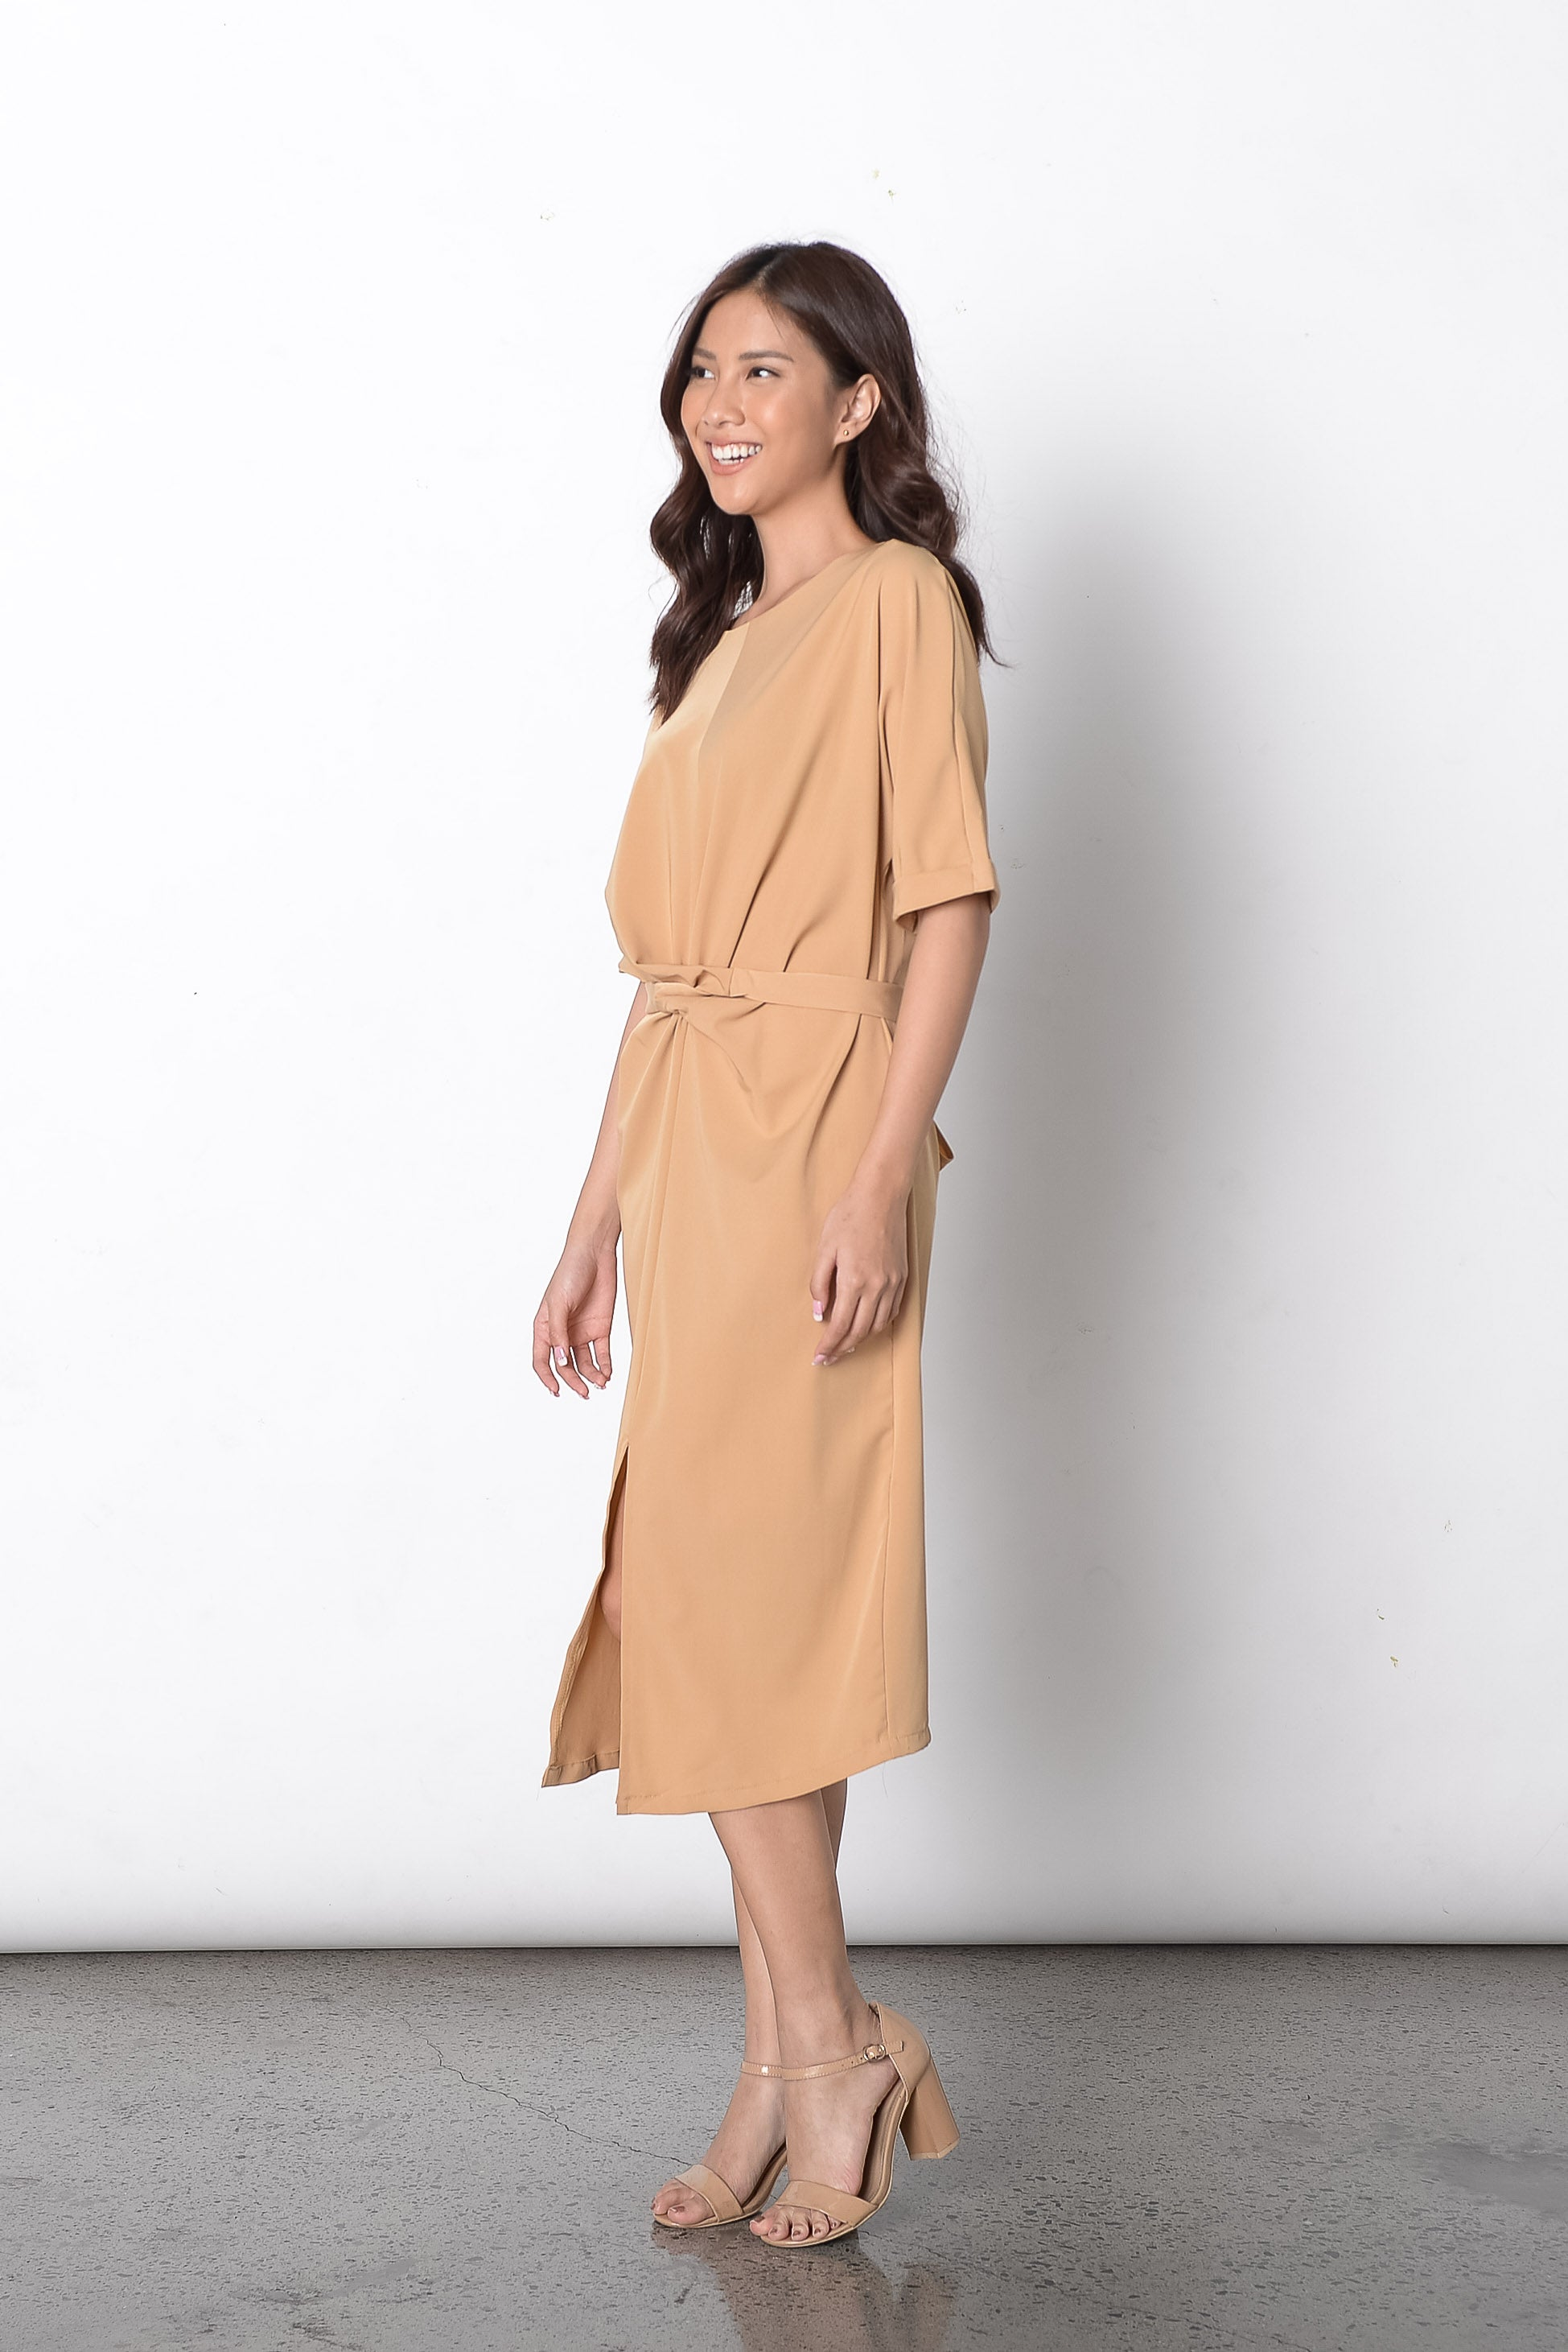 Diantha Dress in Beige